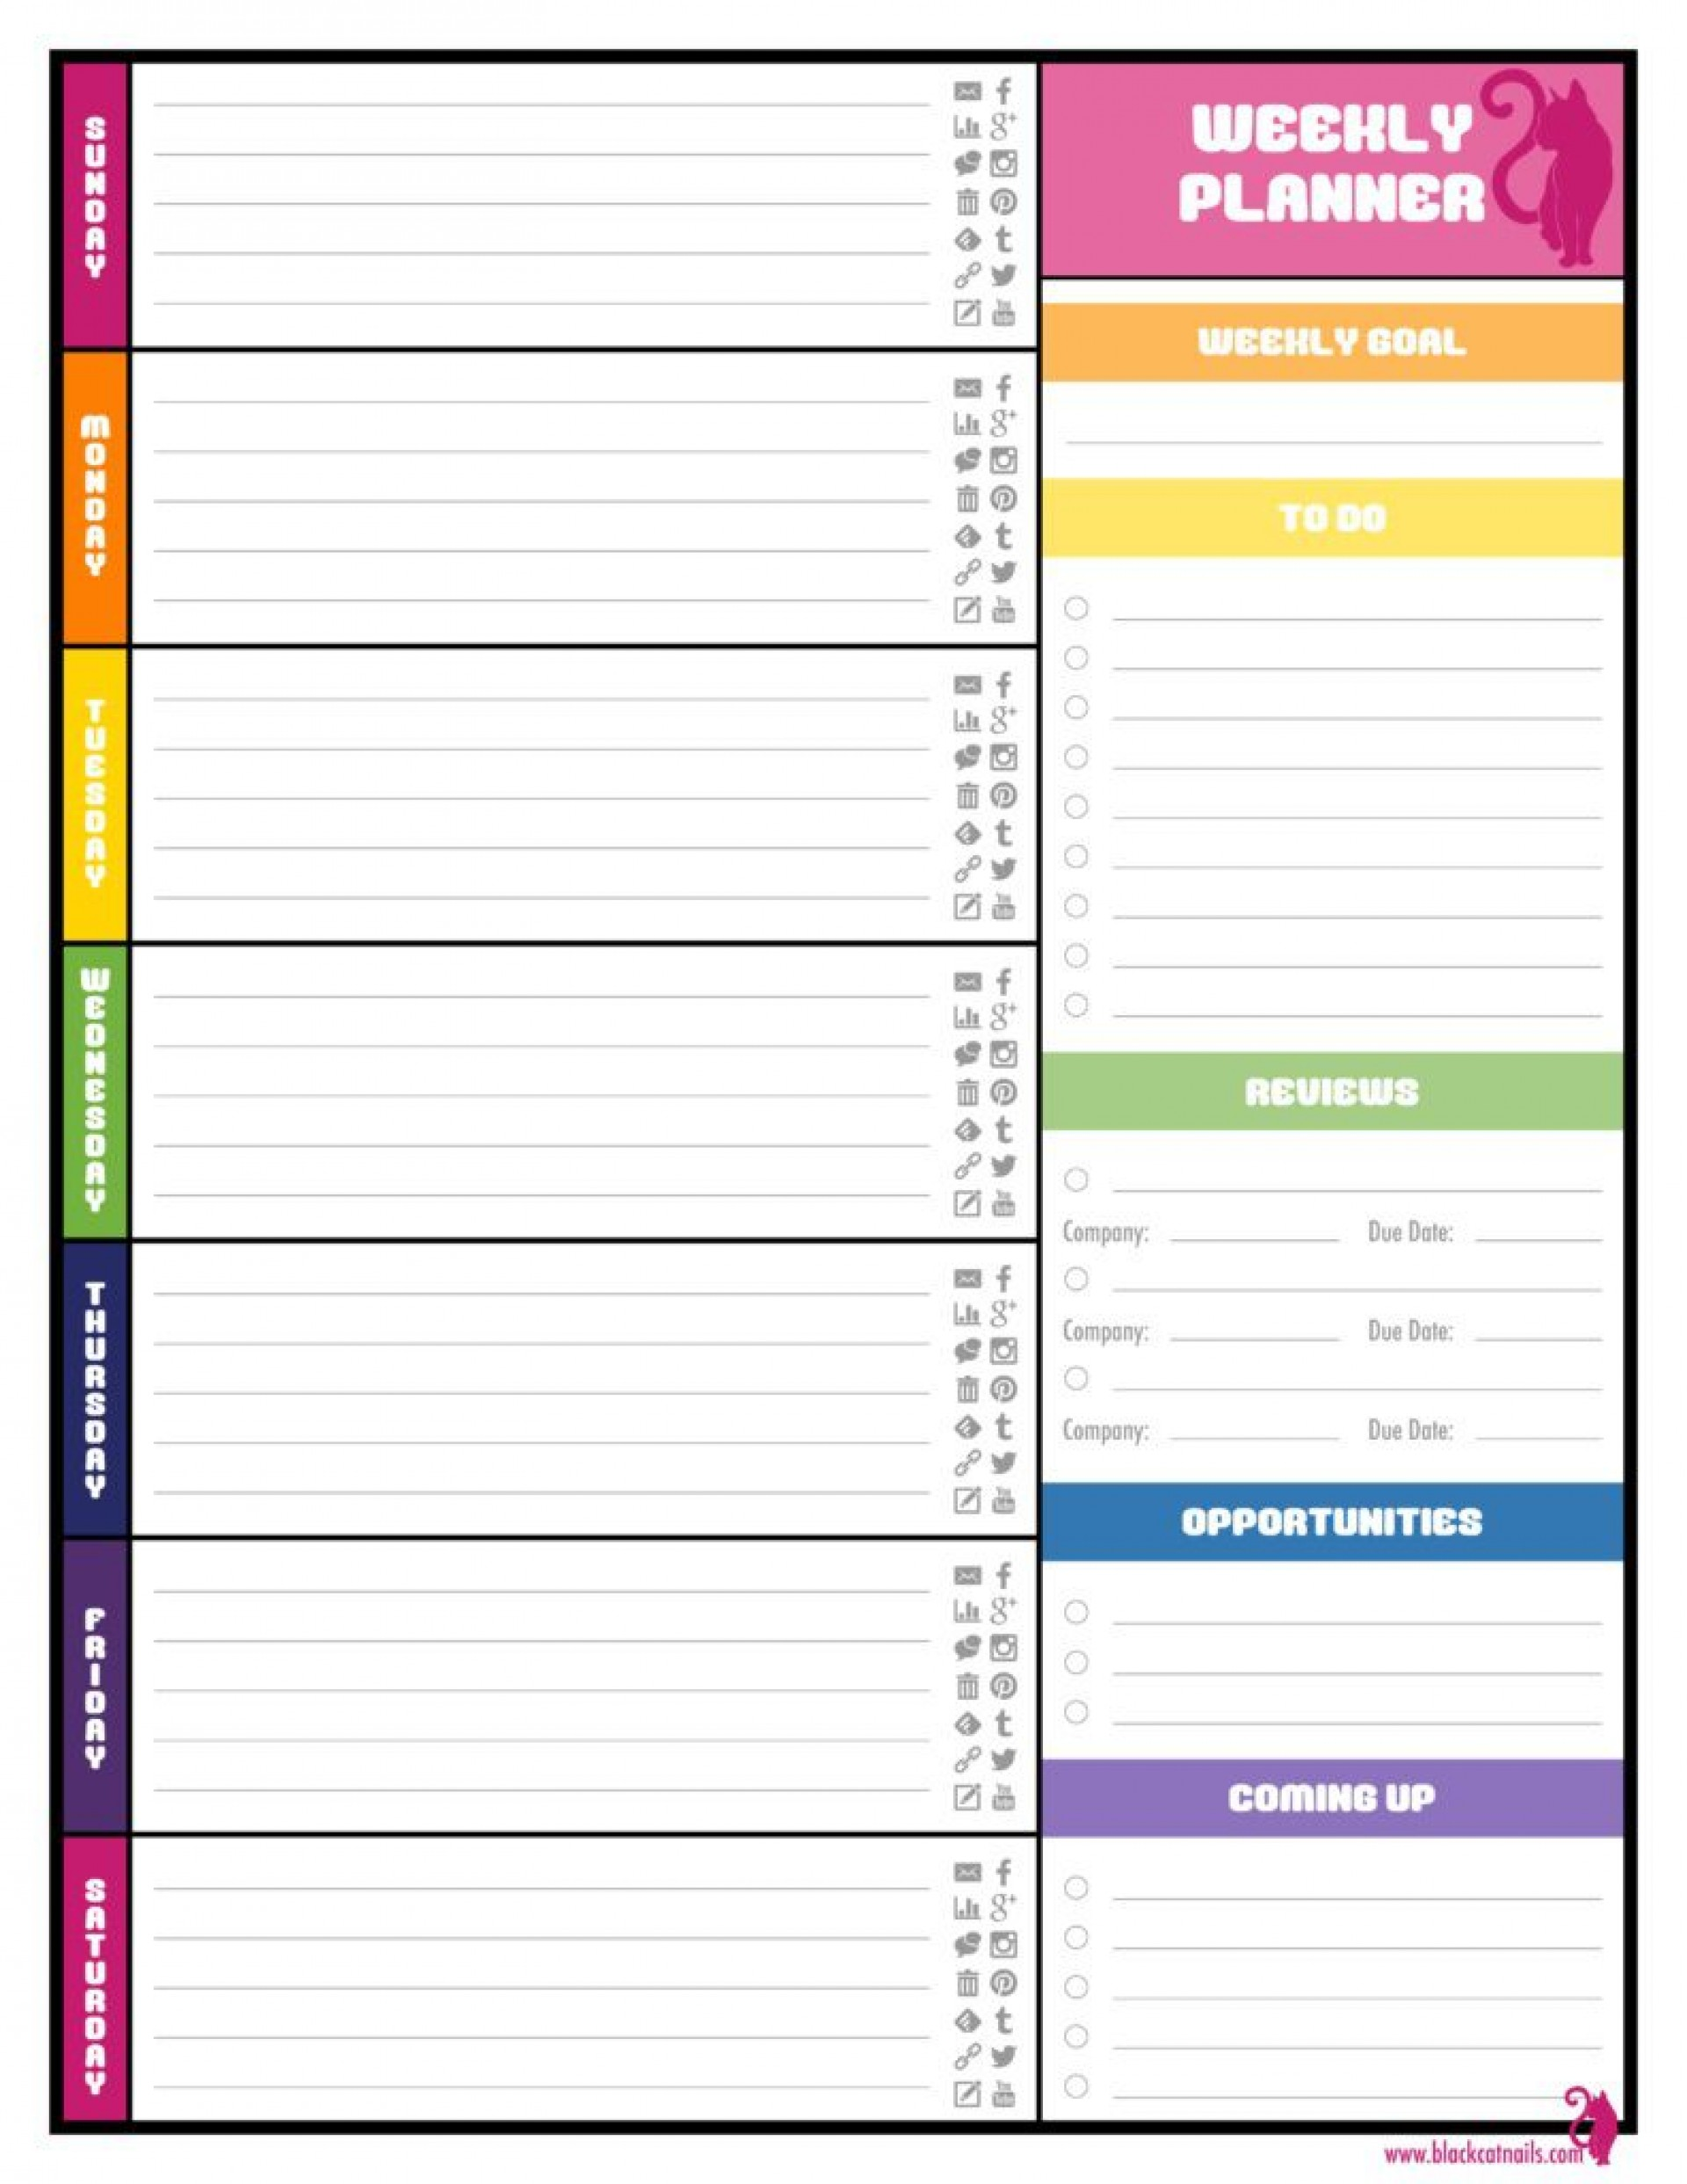 001 Incredible Weekly Schedule Template Word Concept  School Work Plan1920